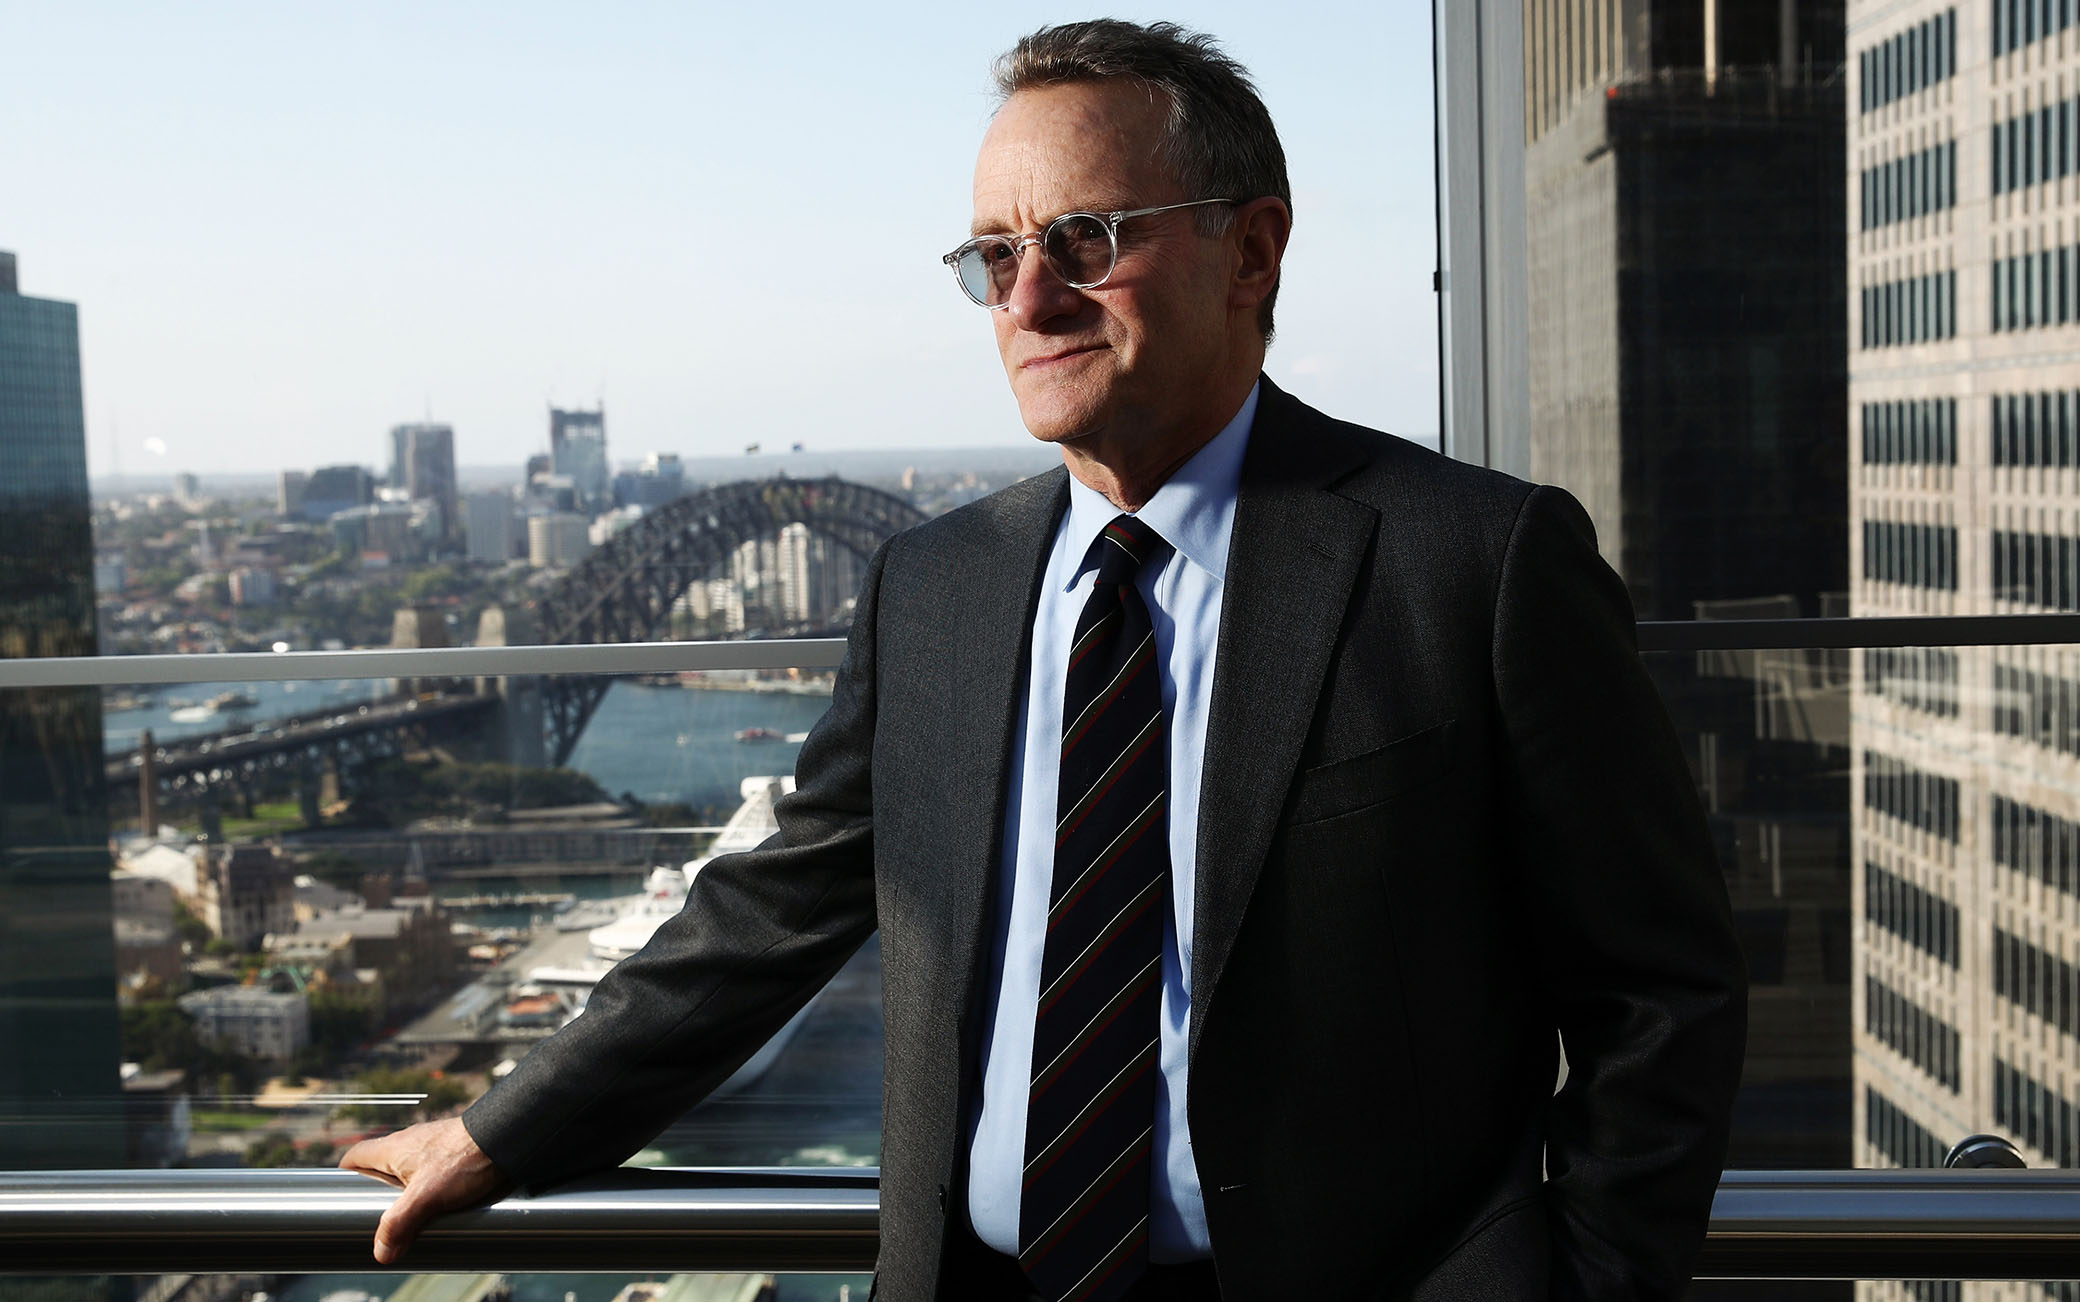 Howard Marks, co-chair of Oaktree and one of the founding partners in 1995